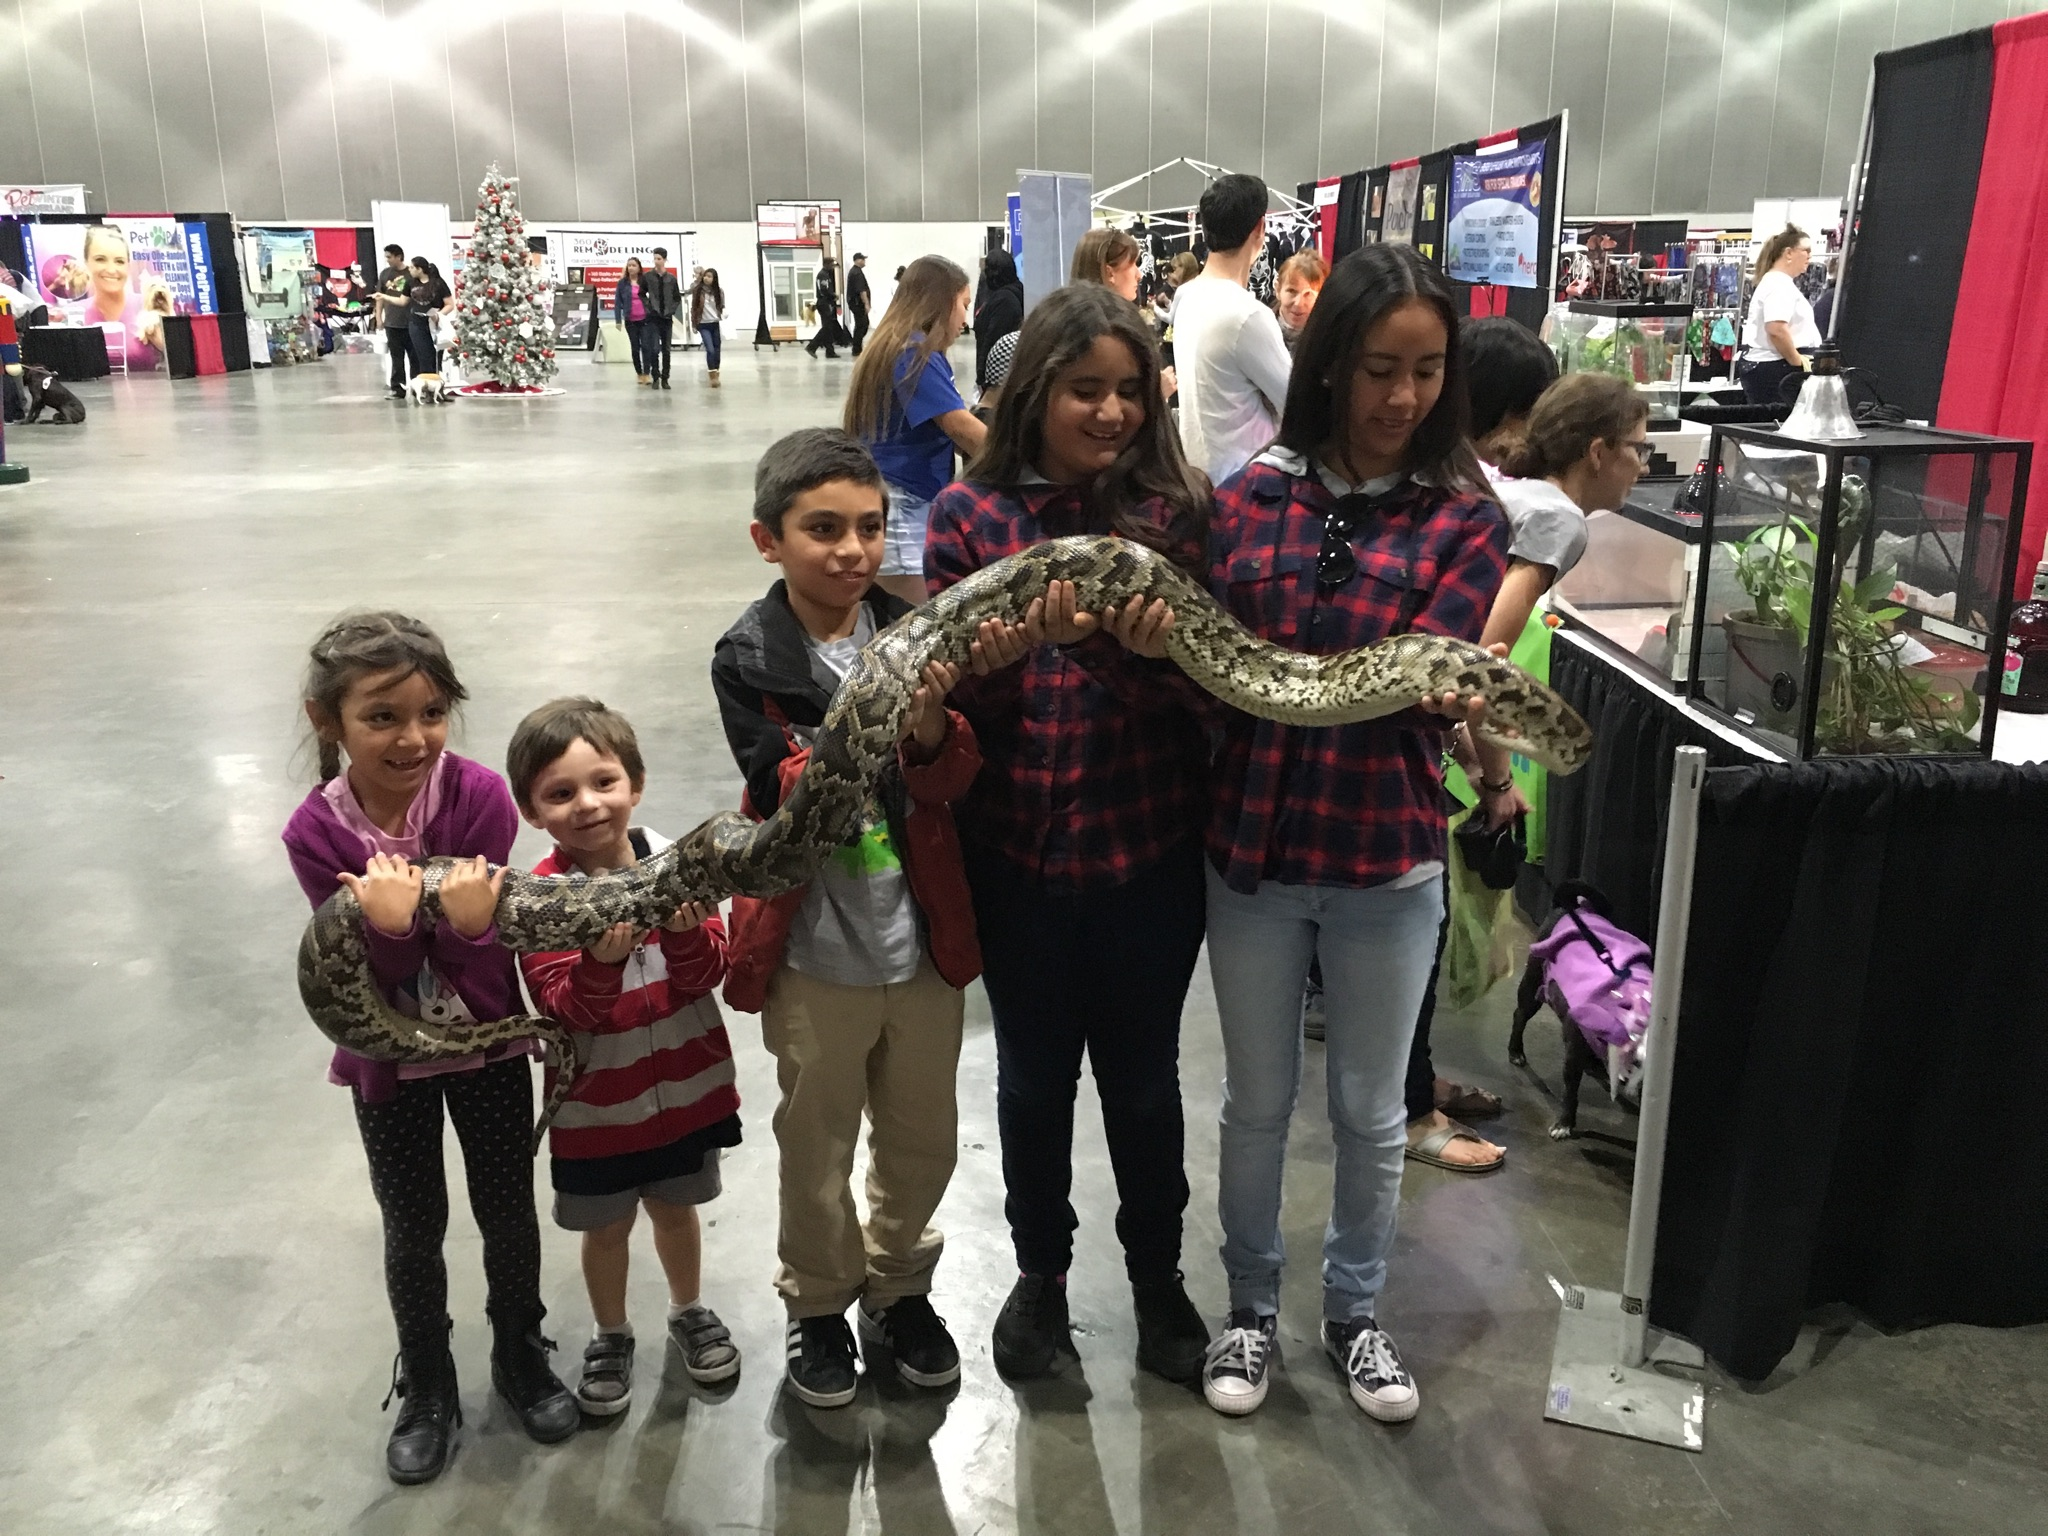 Kids with a snake